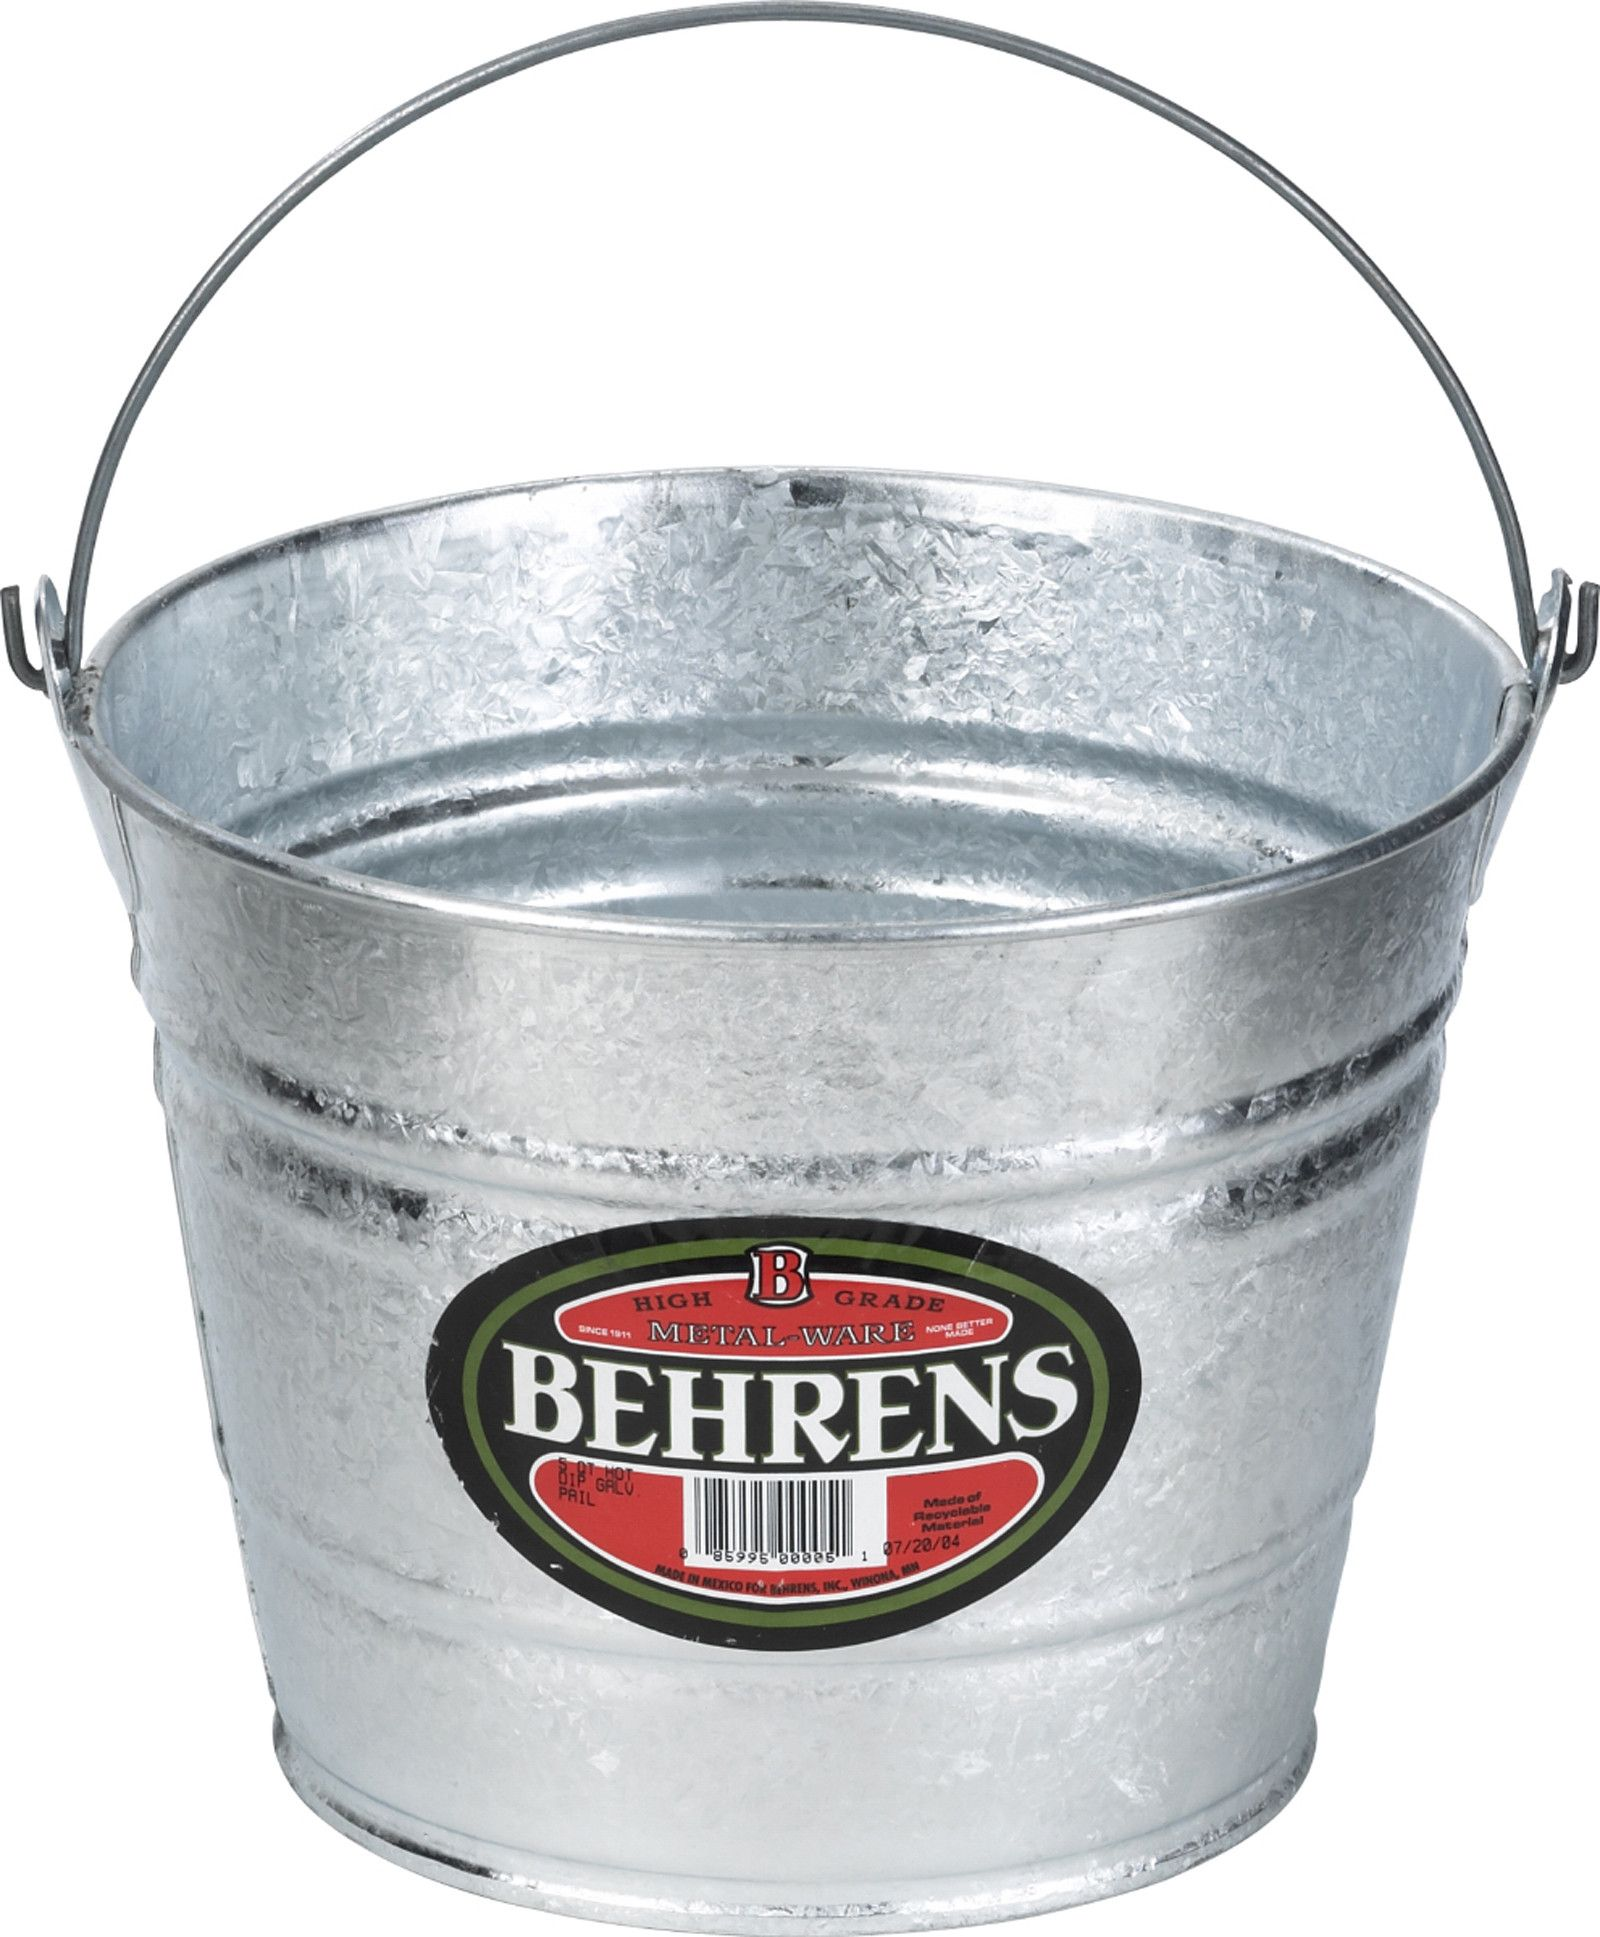 Hot Dipped Steel Pail Water Pail Galvanized Steel Steel